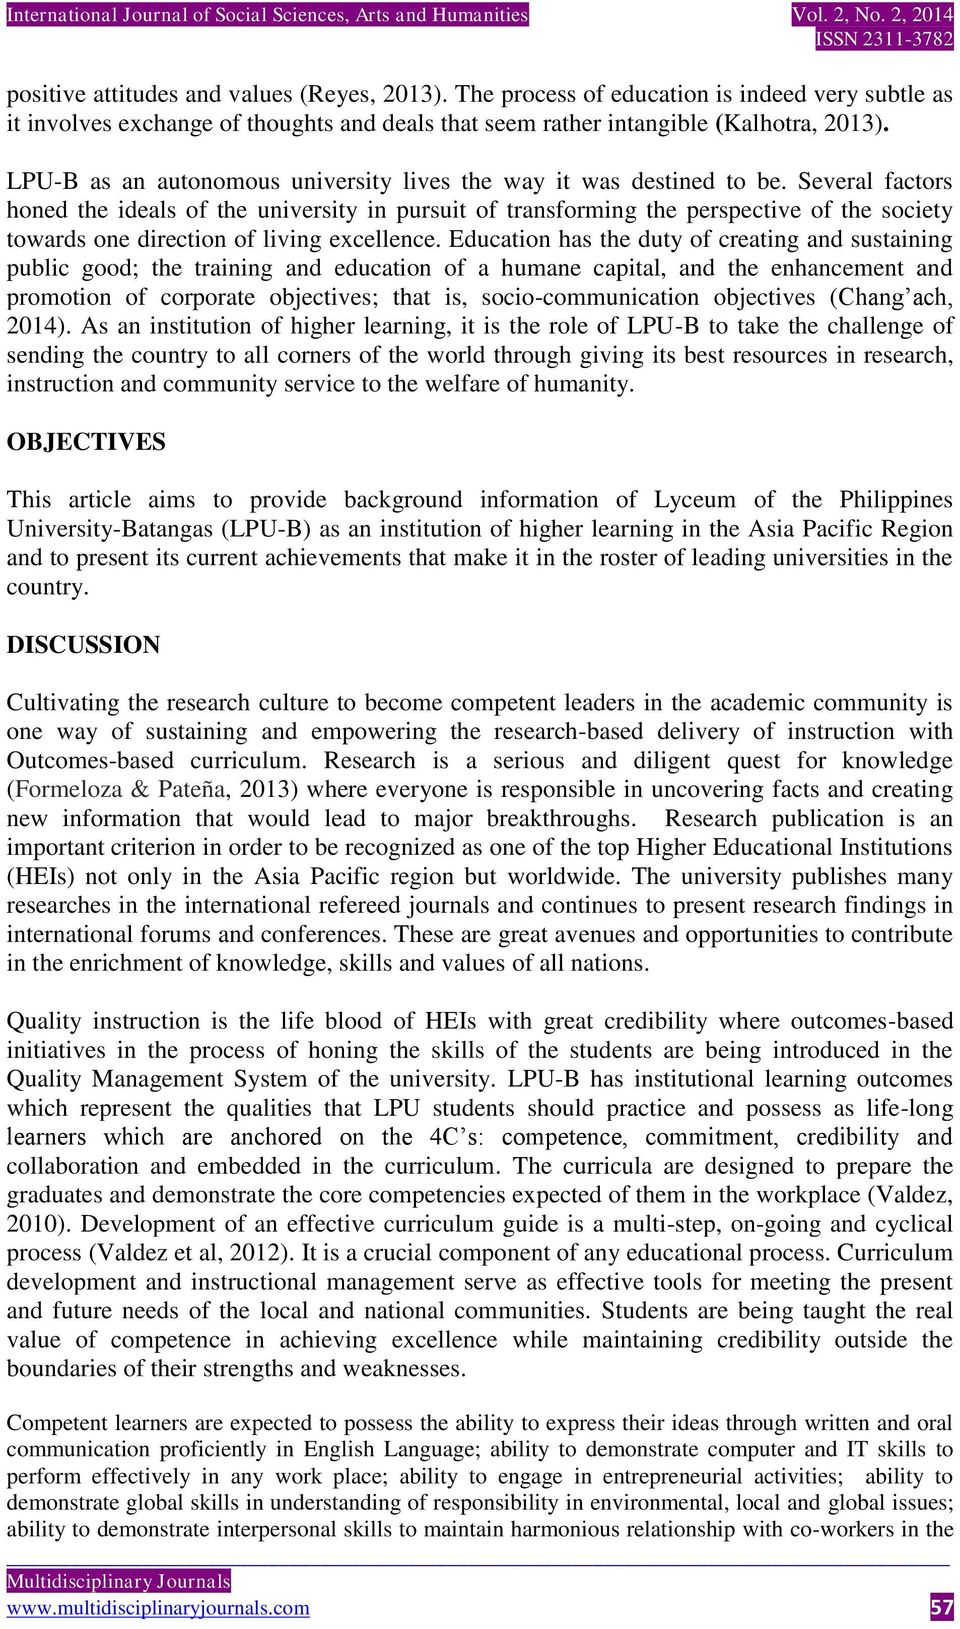 THE EXPERIENCE OF LYCEUM OF THE PHILIPPINES UNIVERSITY